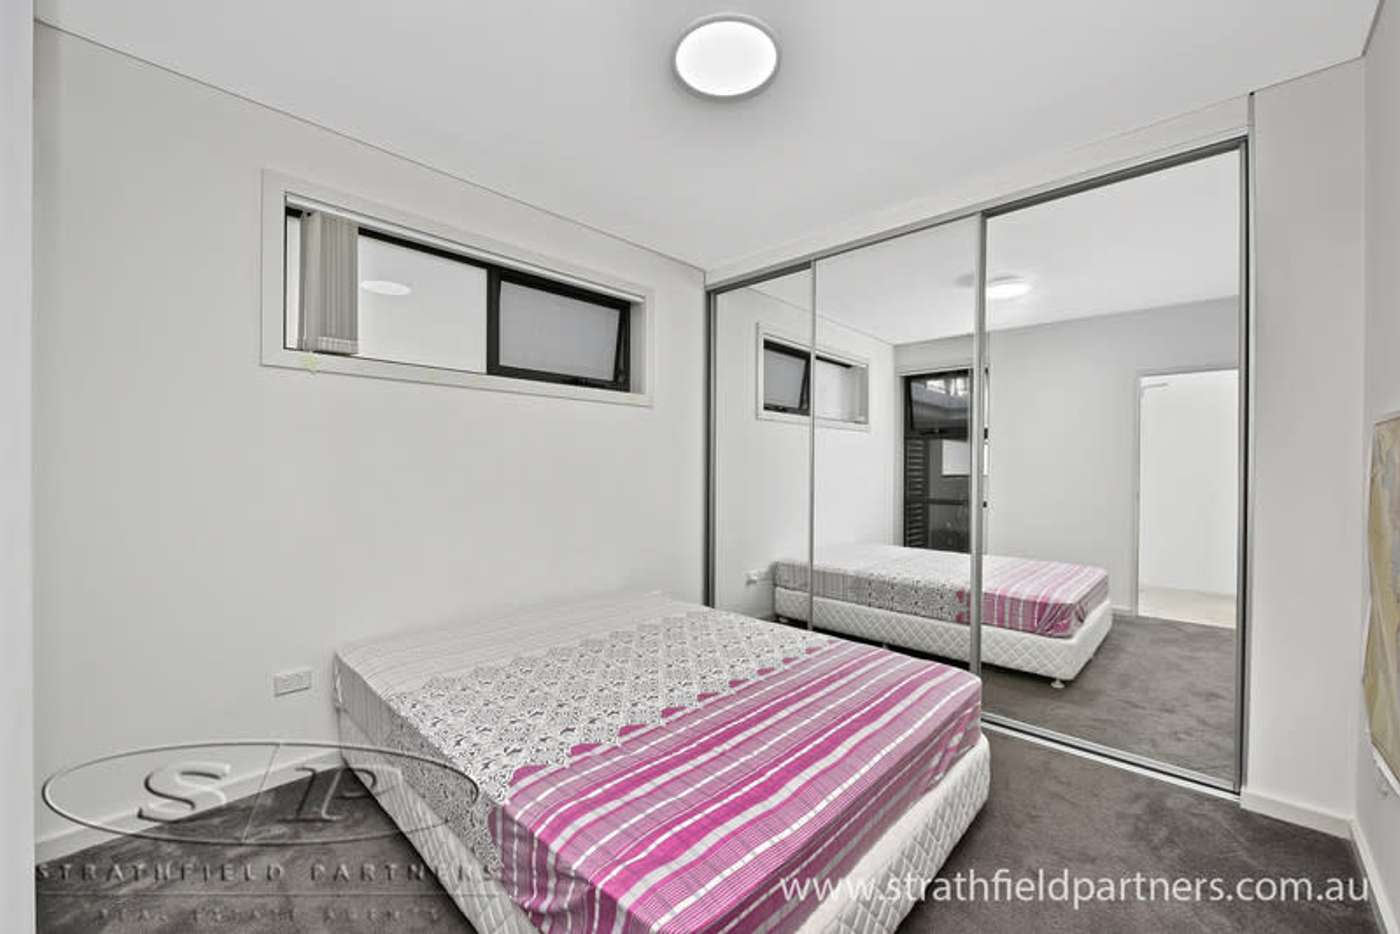 Fifth view of Homely apartment listing, 17/54-58 MacArthur Street, Parramatta NSW 2150